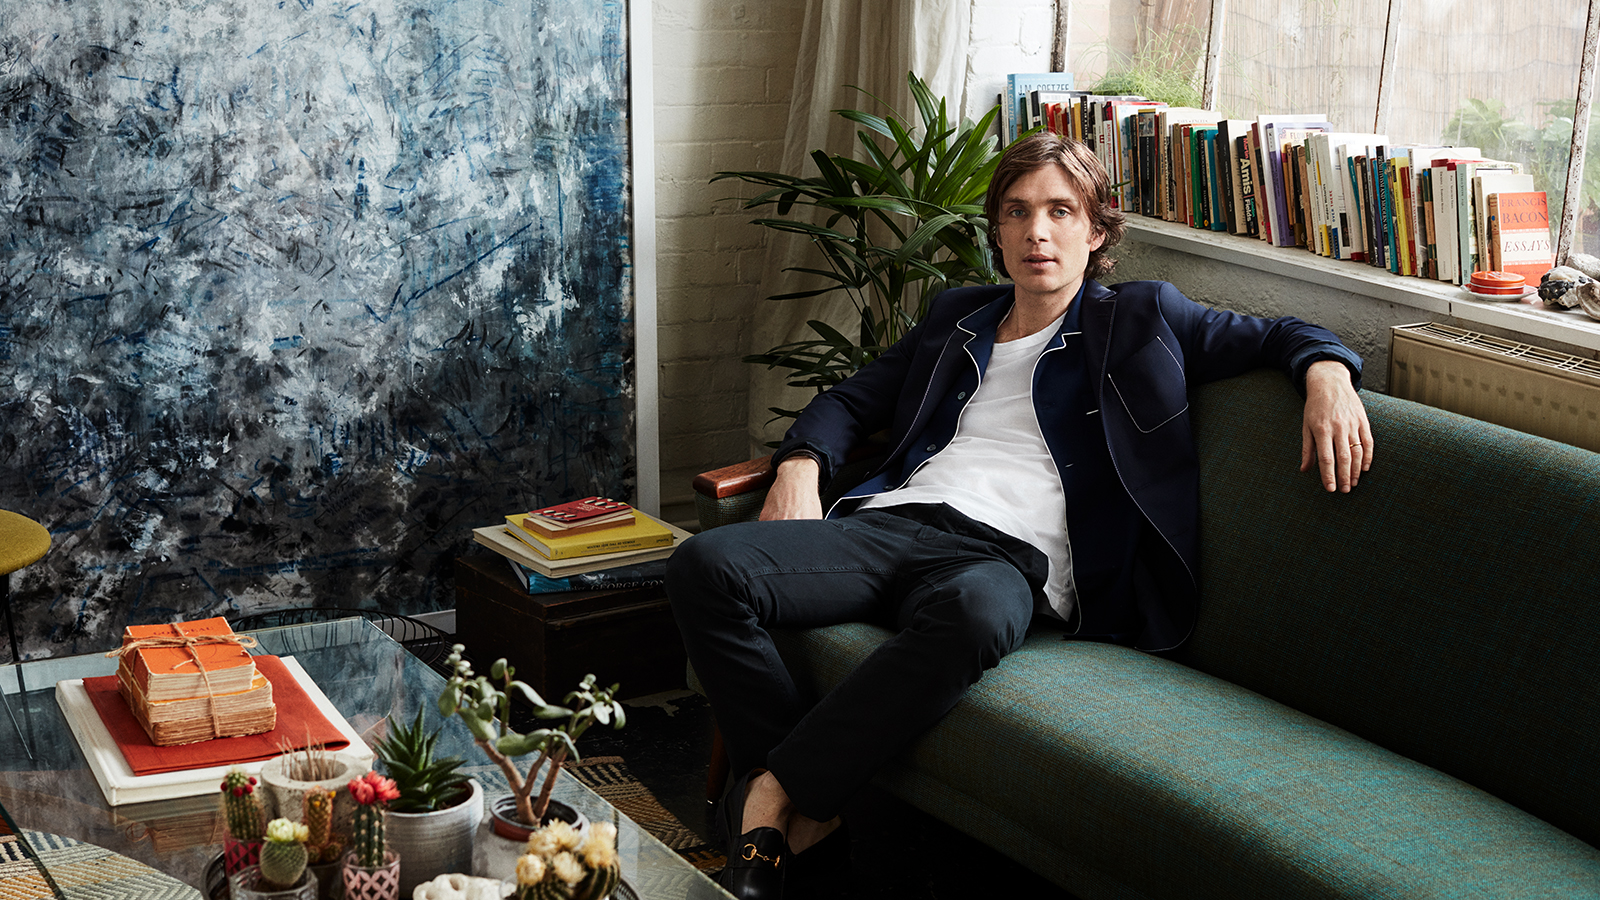 CILLIAN MURPHY'DEN BBC RADIO 6 MUSIC İÇİN 3 SAATLİK PROGRAM